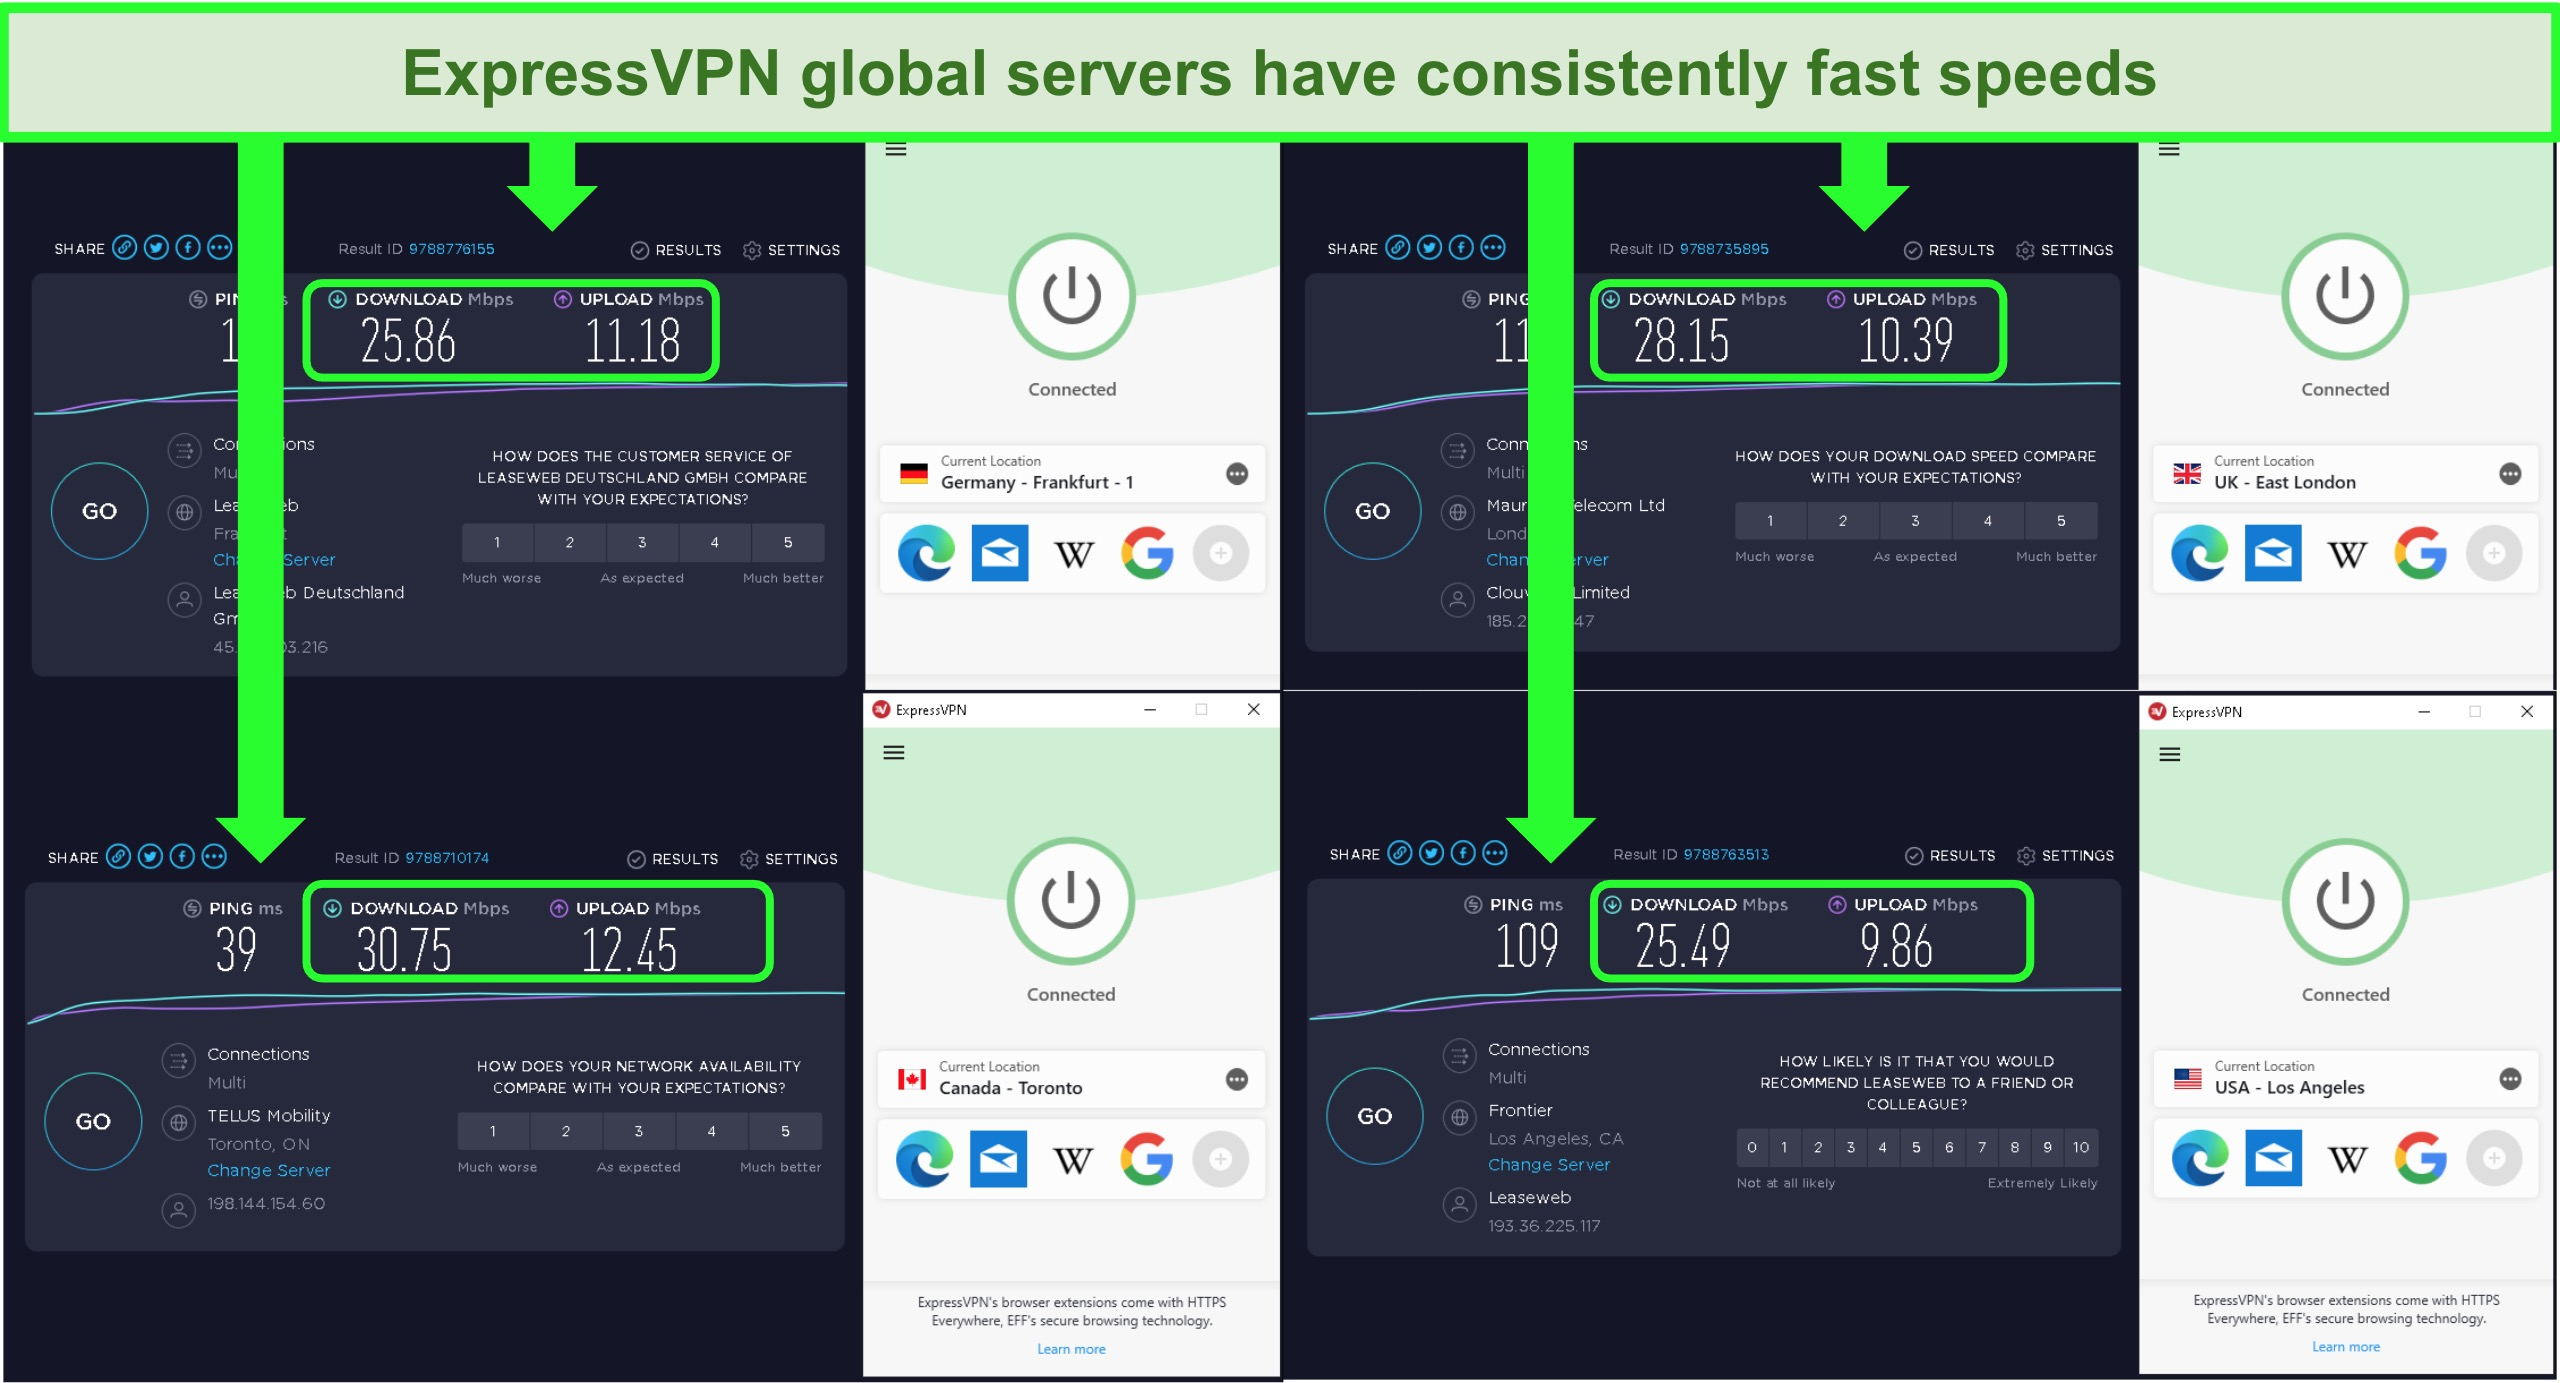 Screenshot of ExpressVPN's global servers' speeds with little difference in download Mbps